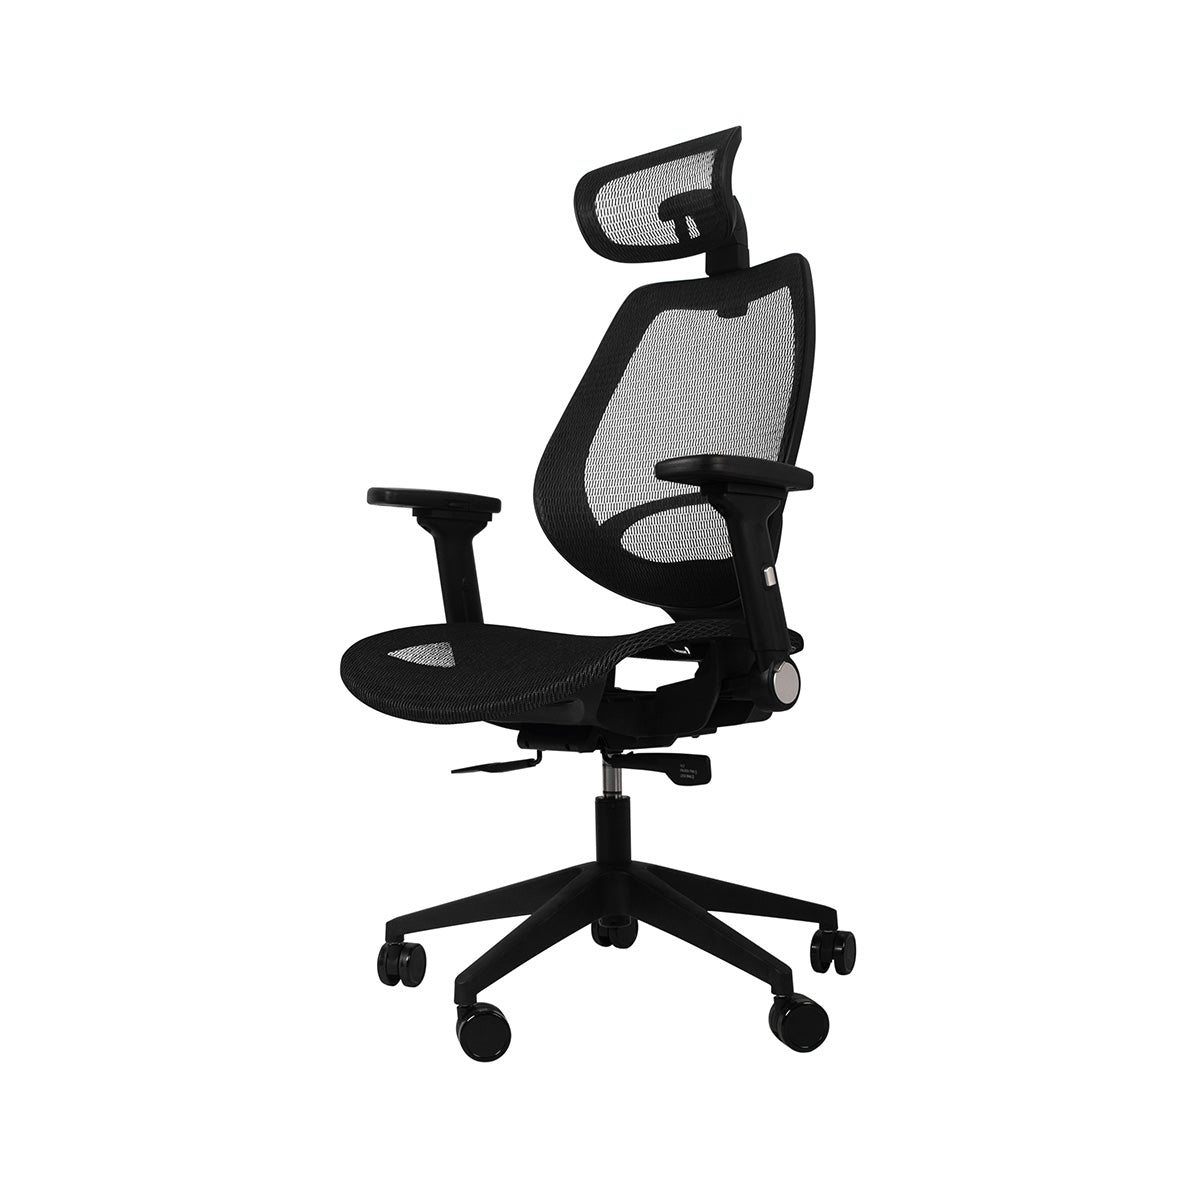 Wavebone Voyager II Ergonomic Studio Chair with Back and Neck Support